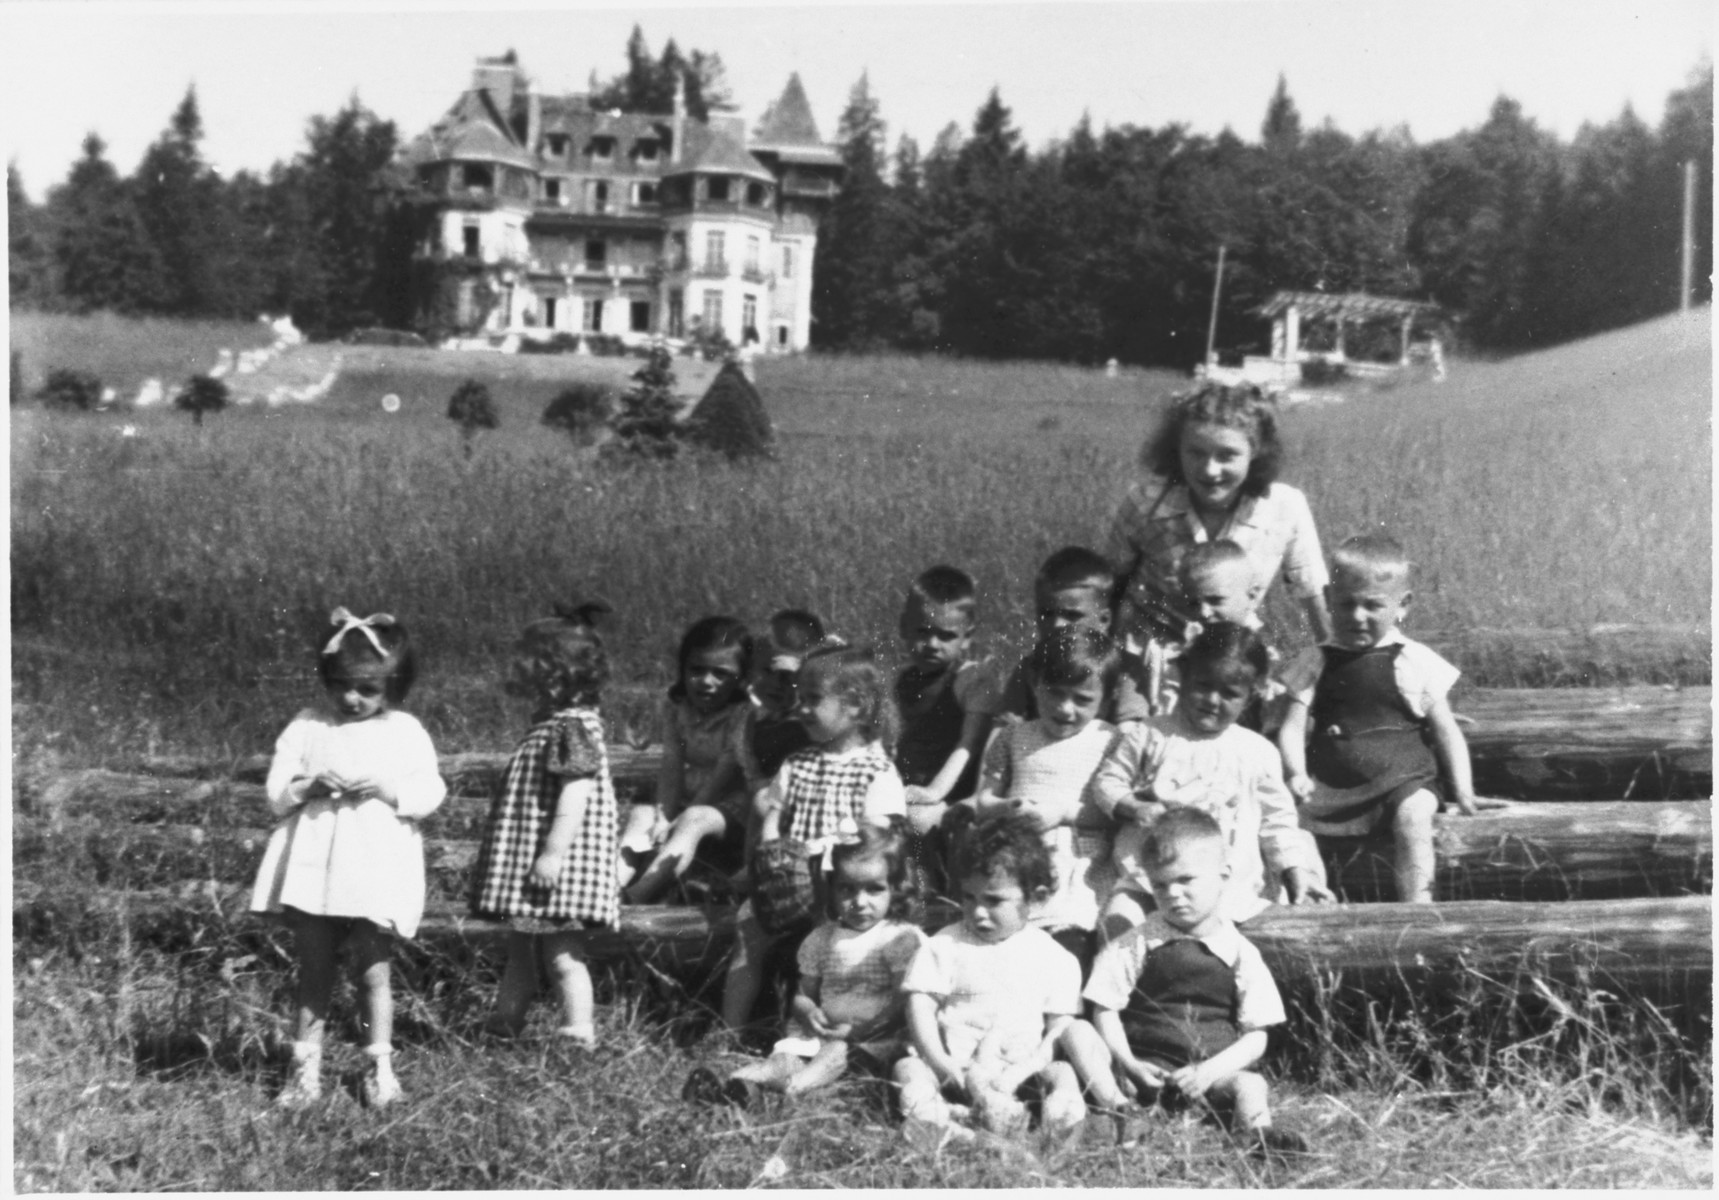 A half-Jewish teenage girl who survived the war in hiding poses with a group of the youngest children in the Chateau des Avenieres children's home in Cruseiles.  Pictured in the back right is Margot Schwarzschild.